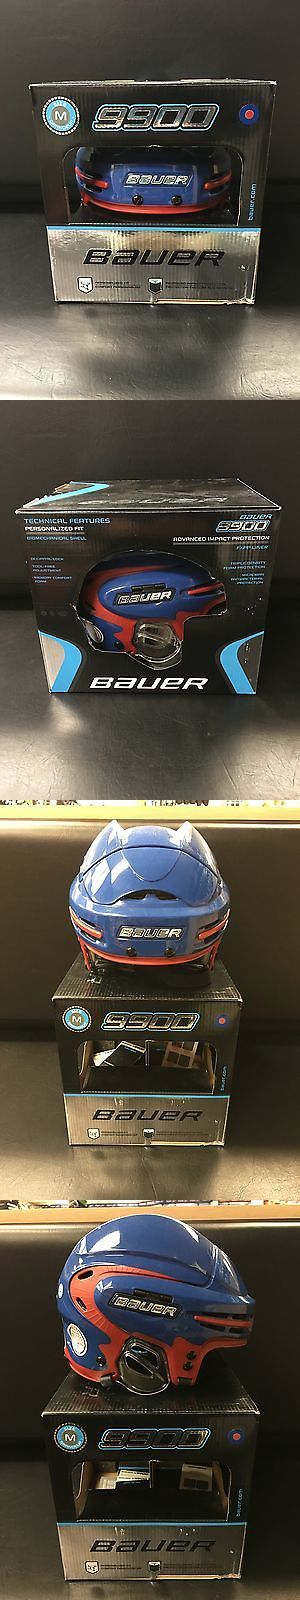 Hockey-Other 780: Bauer 9900 Hockey Helmet - Blue Red - Med -> BUY IT NOW ONLY: $79.99 on eBay!